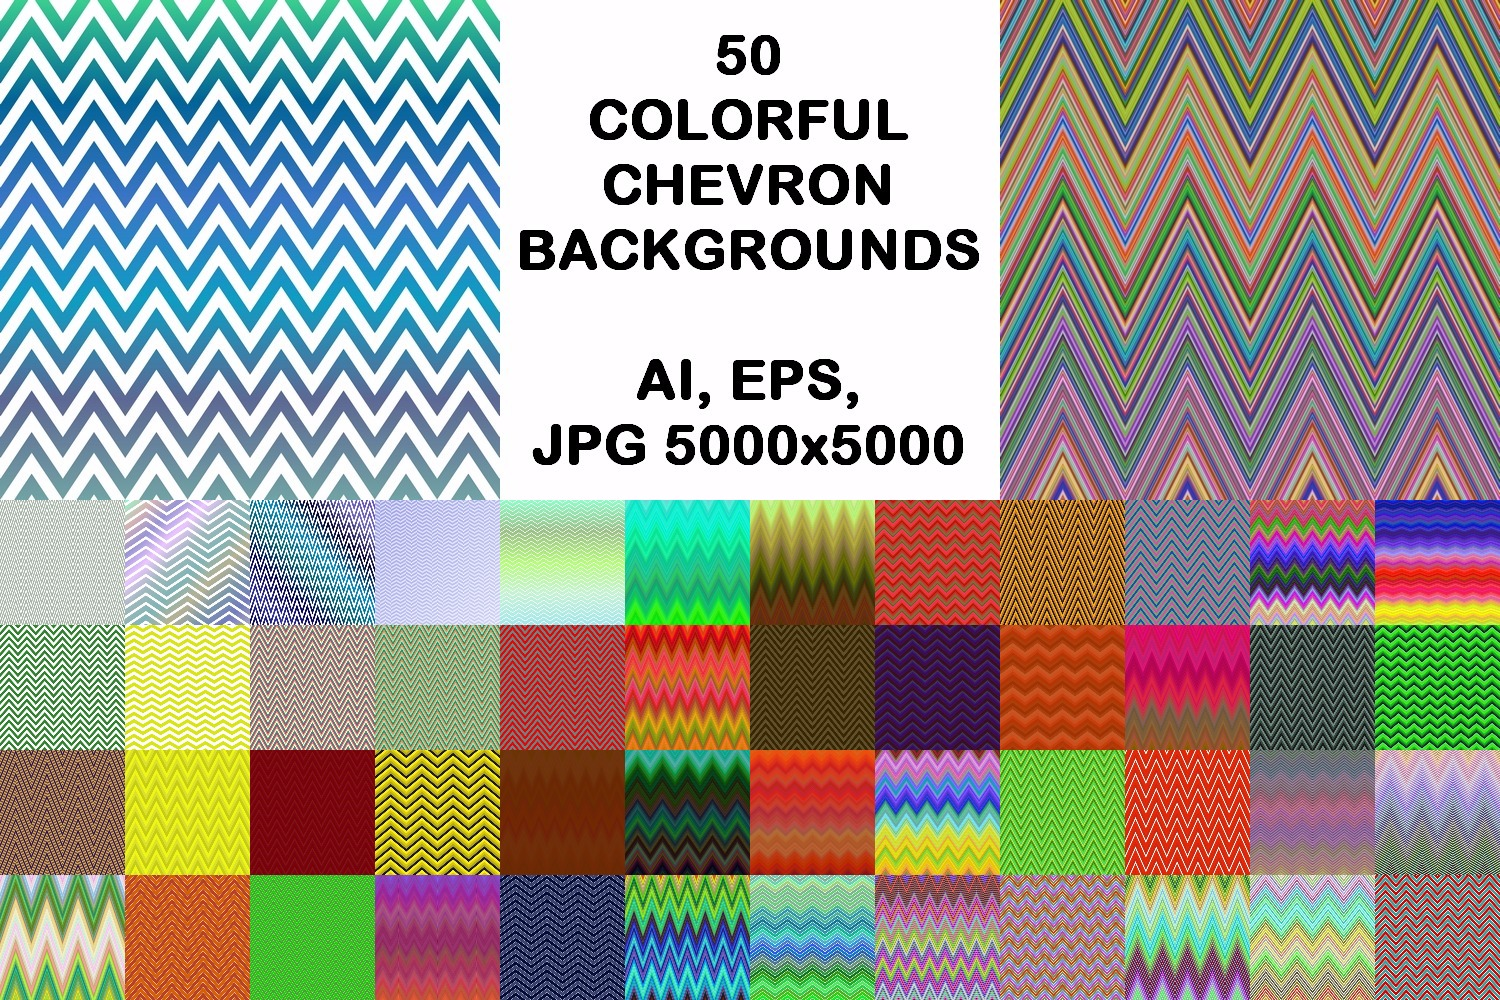 50 colorful chevron backgrounds (AI, EPS, JPG 5000x5000) example image 1